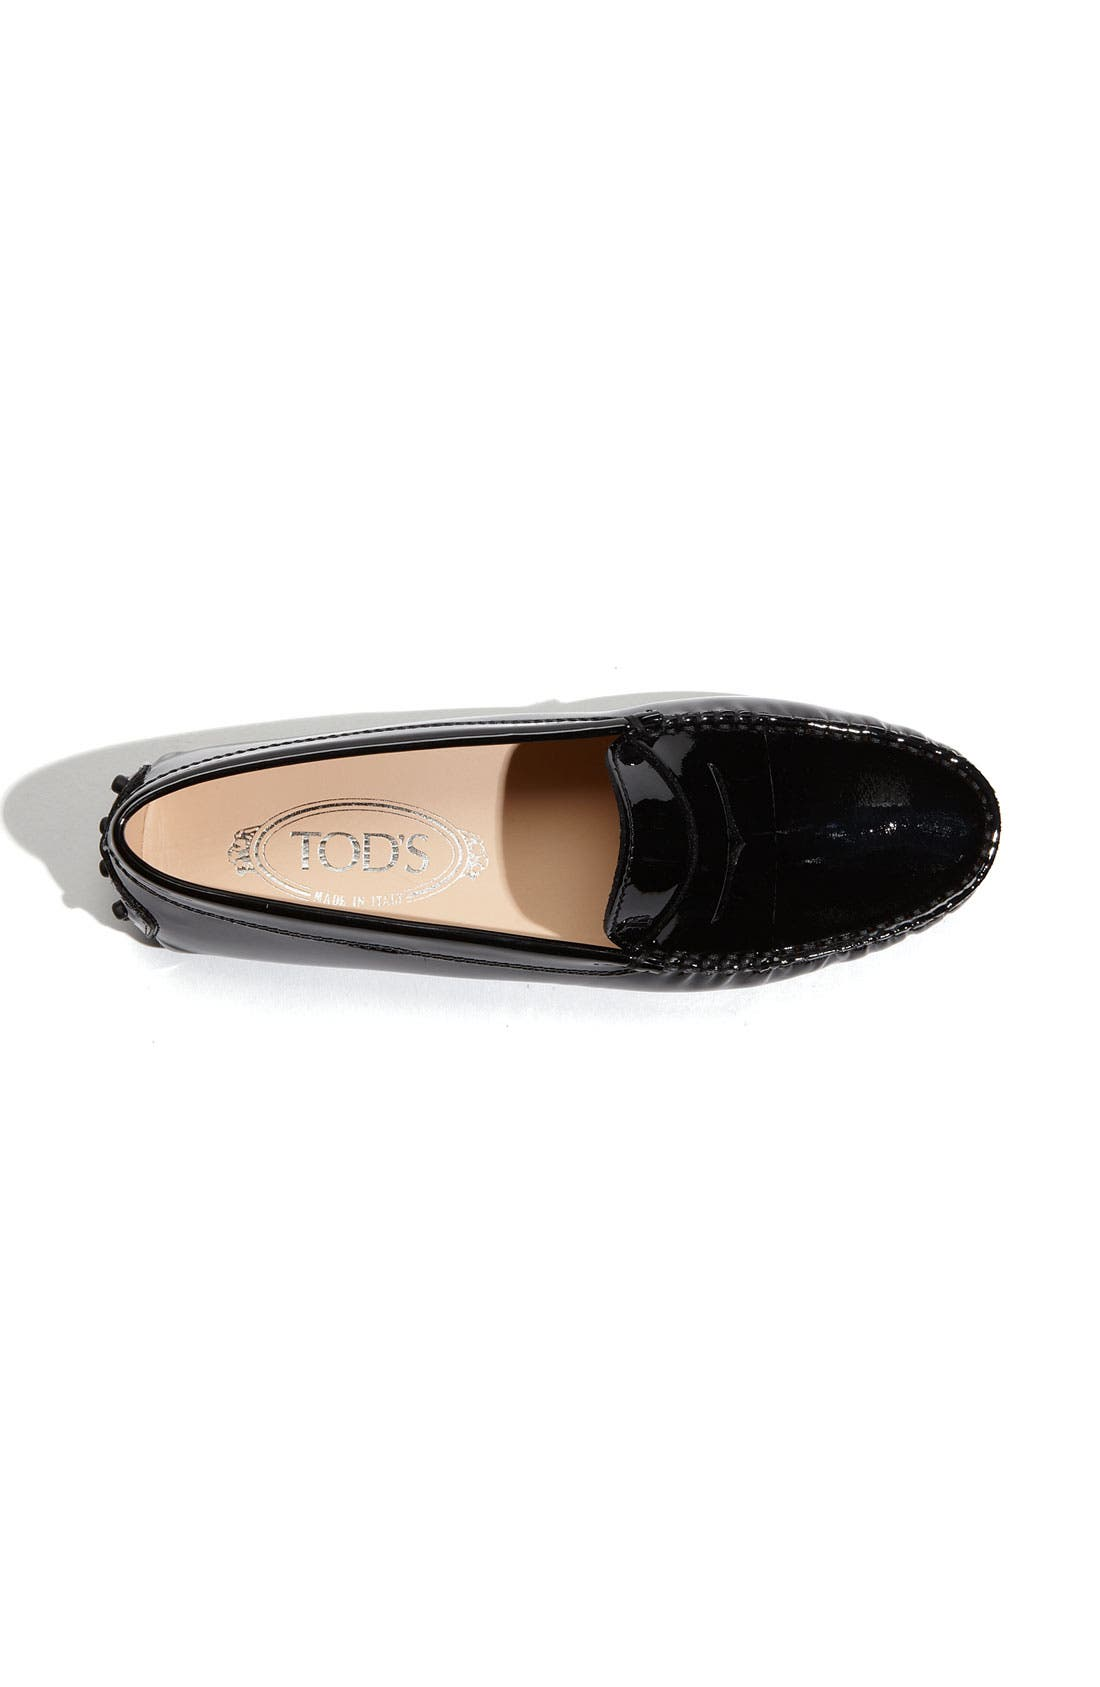 Alternate Image 3  - Tod's 'Gommini' Moccasin (Women)